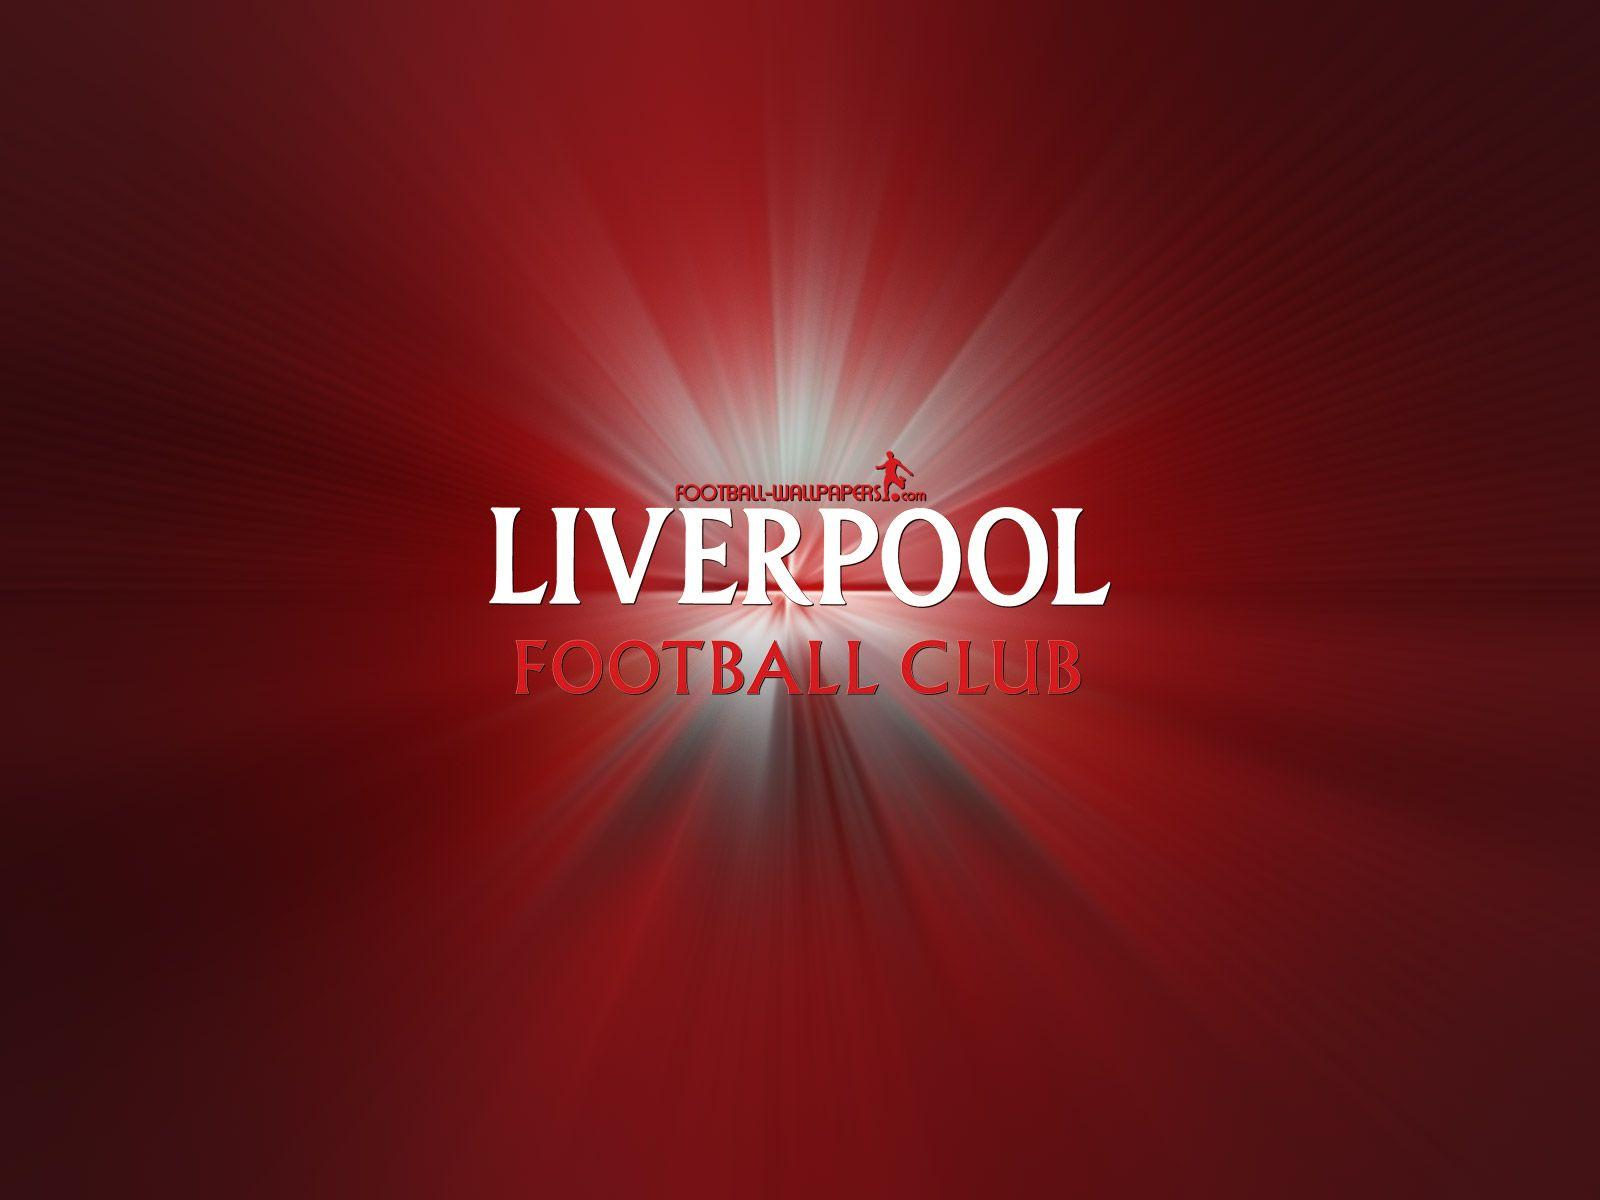 [49+] Liverpool FC Wallpapers Screensavers on WallpaperSafari |Liverpool Screensavers